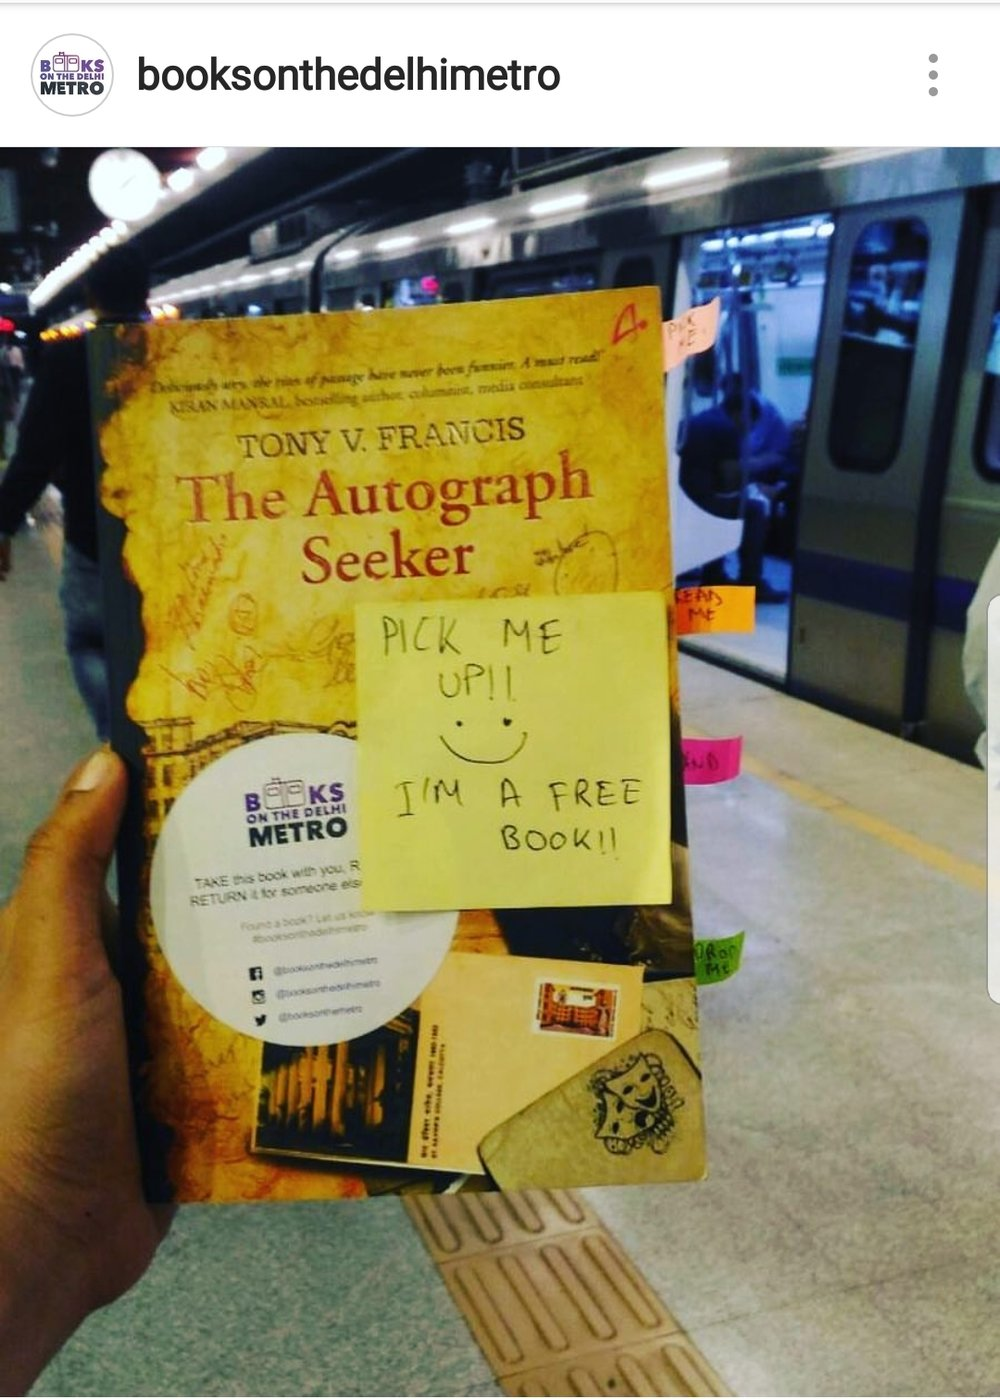 Books On The Delhi Metro' a not for profit organisation is hiding books in Delhi metro stations for people to read and pass them ........ to infuse some good old reading habit among the commuters.You can identify these books from the sticker on the covers.